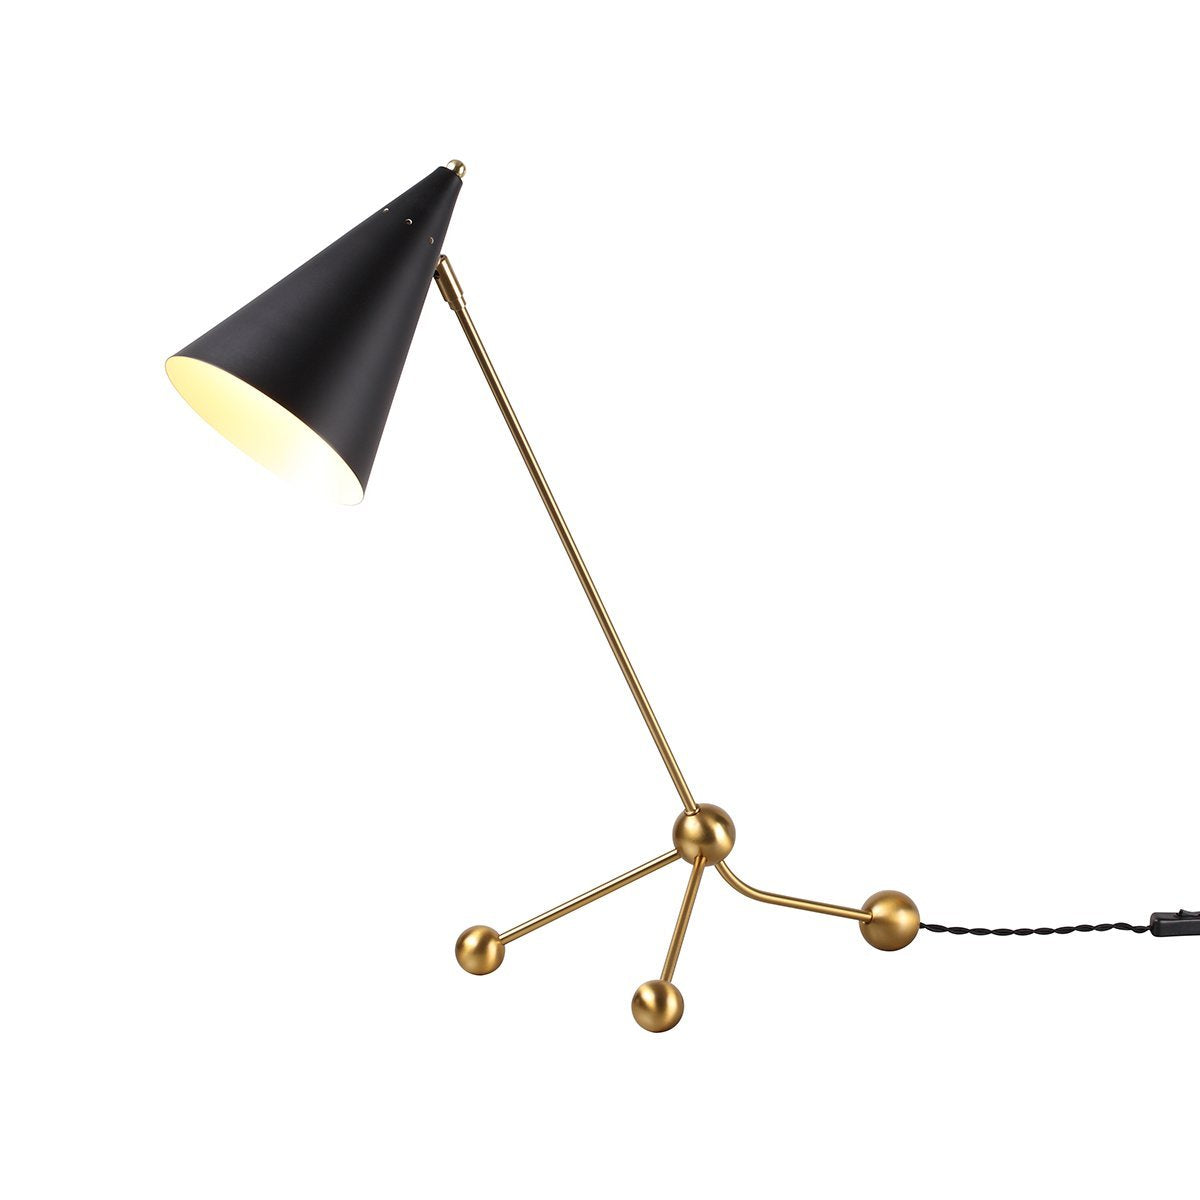 [LBT097BBLK] Keila Too Table Lamp